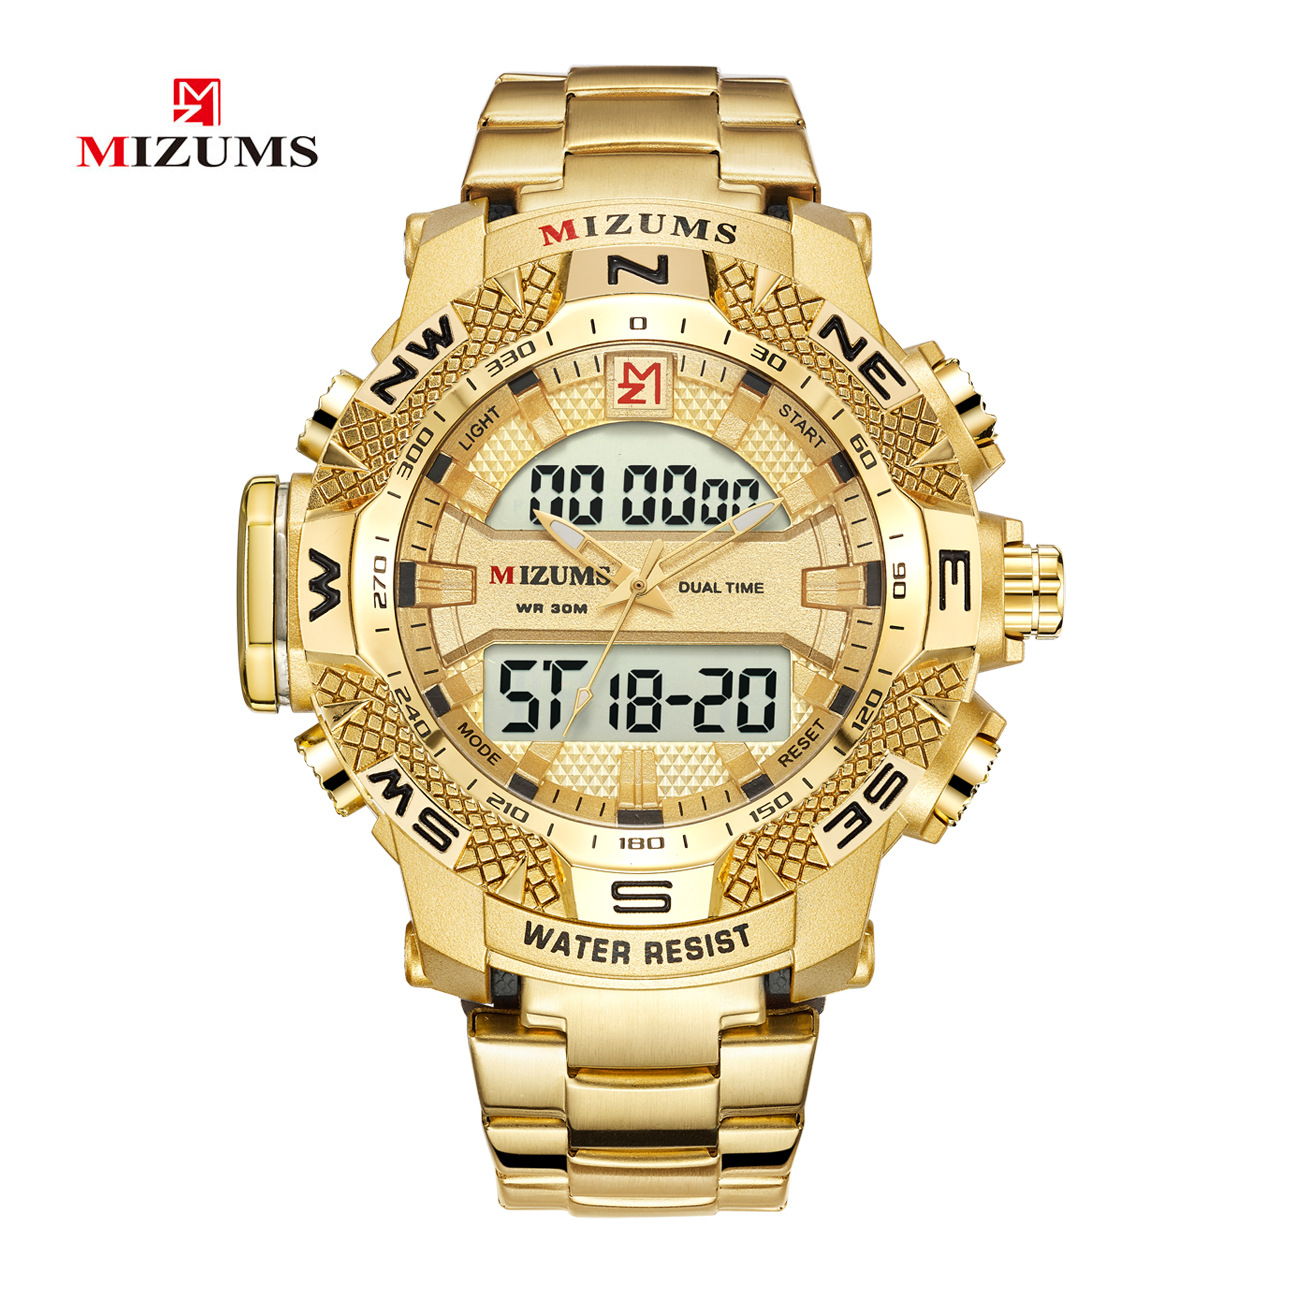 Gold Mens LED Digital Watches Military Sports Watches Waterproof Alarm Men Stainless Steel Quartz Wristwatches Relogio Masculino